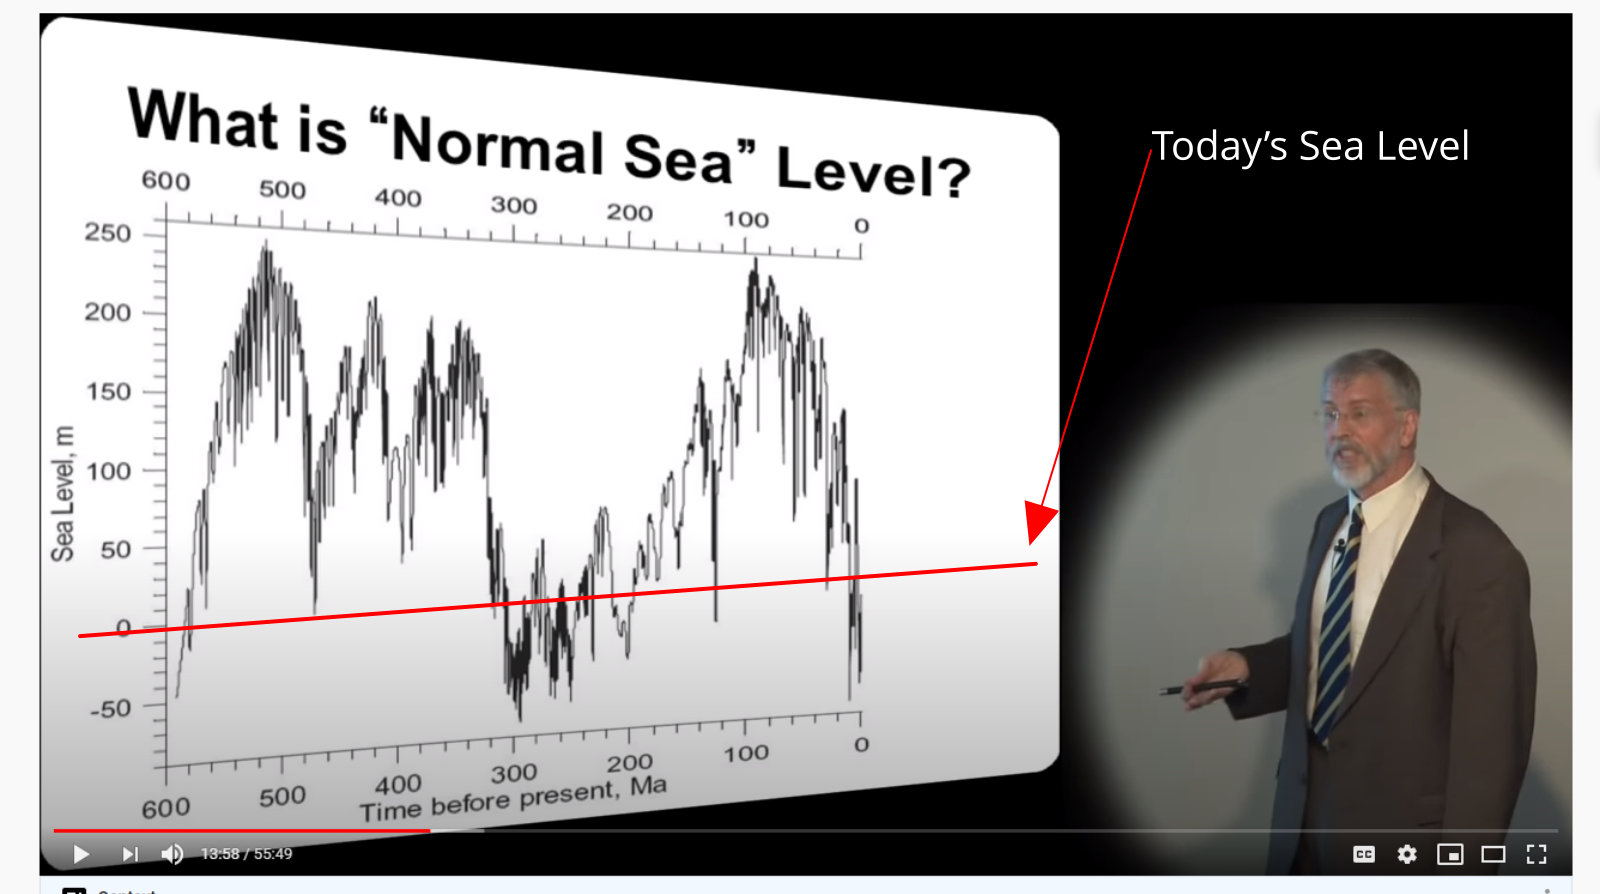 sea levels have never been stable over time